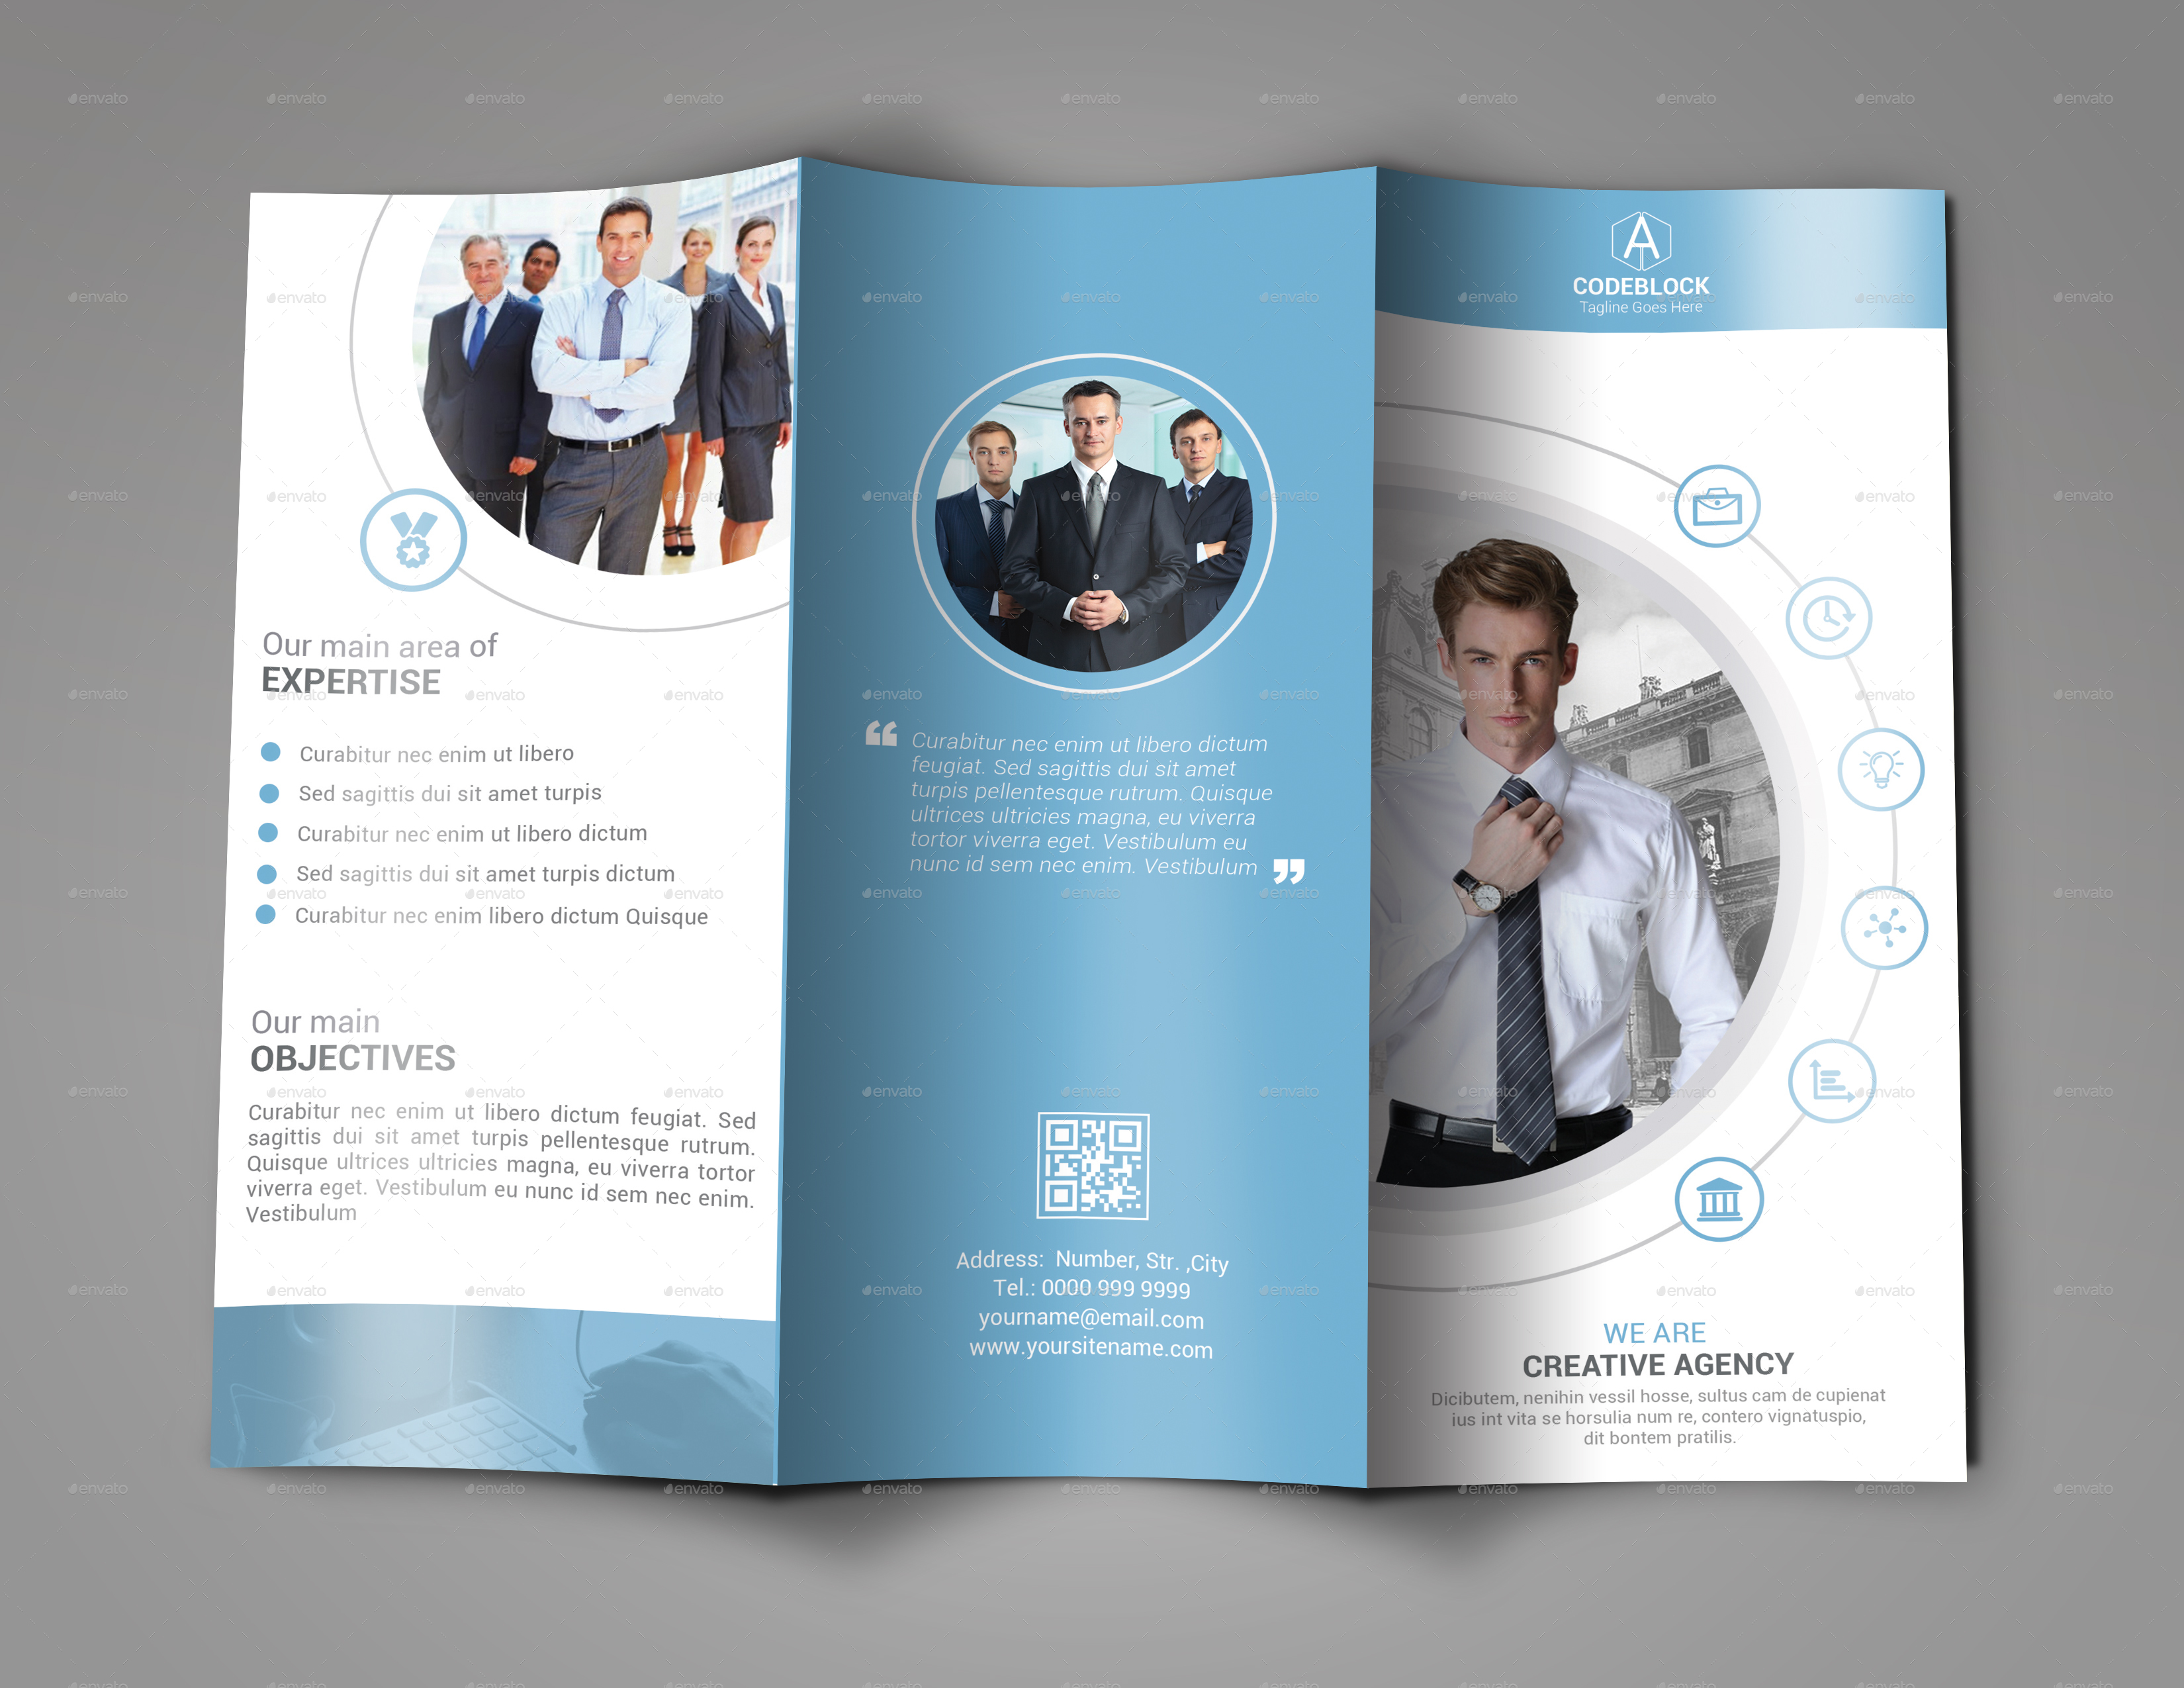 Business Tri fold Brochure Design by MurtalaWork   GraphicRiver Business Tri fold Brochure Design   Corporate Brochures      Preview Image  Set 01 Screenshot jpg